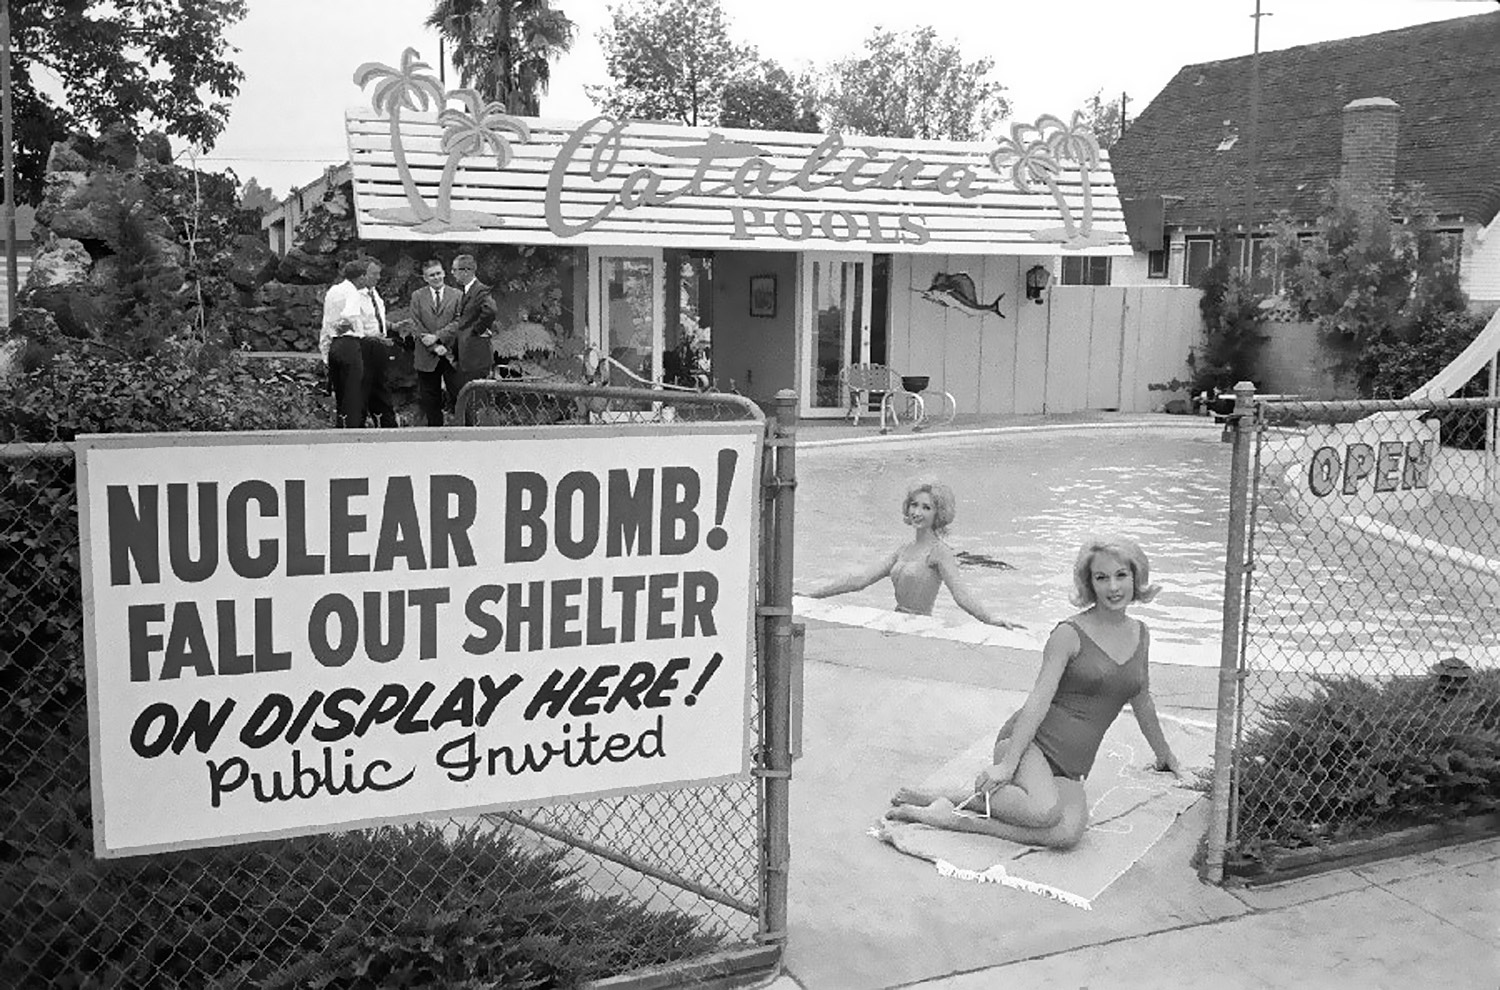 Early 1960s - Nuclear Bomb Fallout Shelter On Display Here